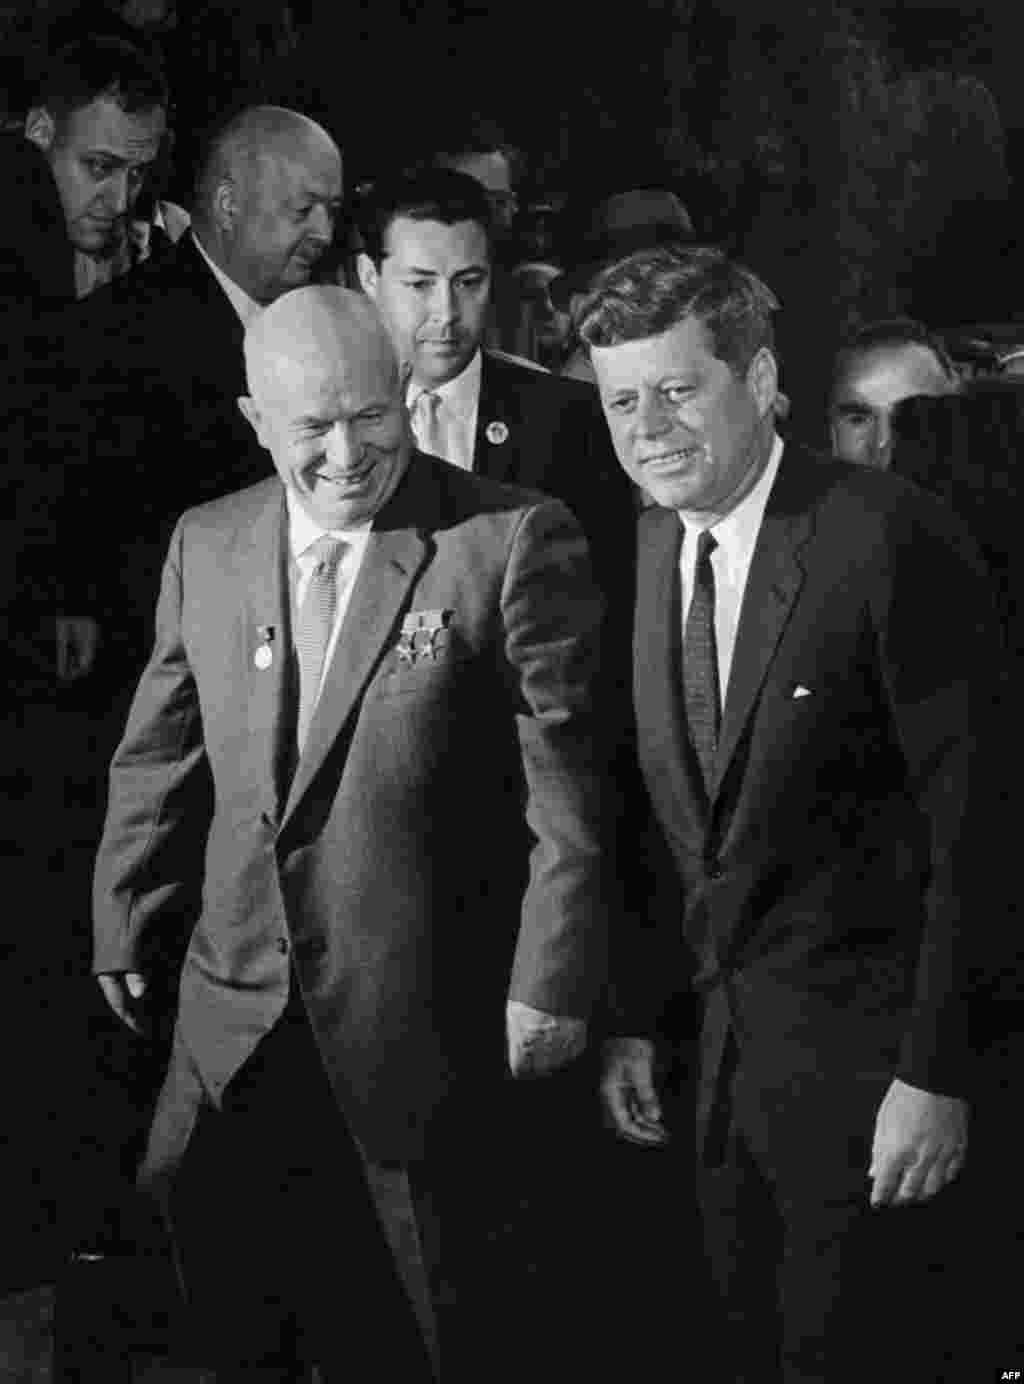 Khrushchev joins U.S. President John F. Kennedy at their first meeting on June 3, 1961 in Vienna, one year before the beginning of the Cuban missile crisis. Kennedy ordered a blockade of Cuba in October 1962 after the Soviet Union began to transport missiles to the island.